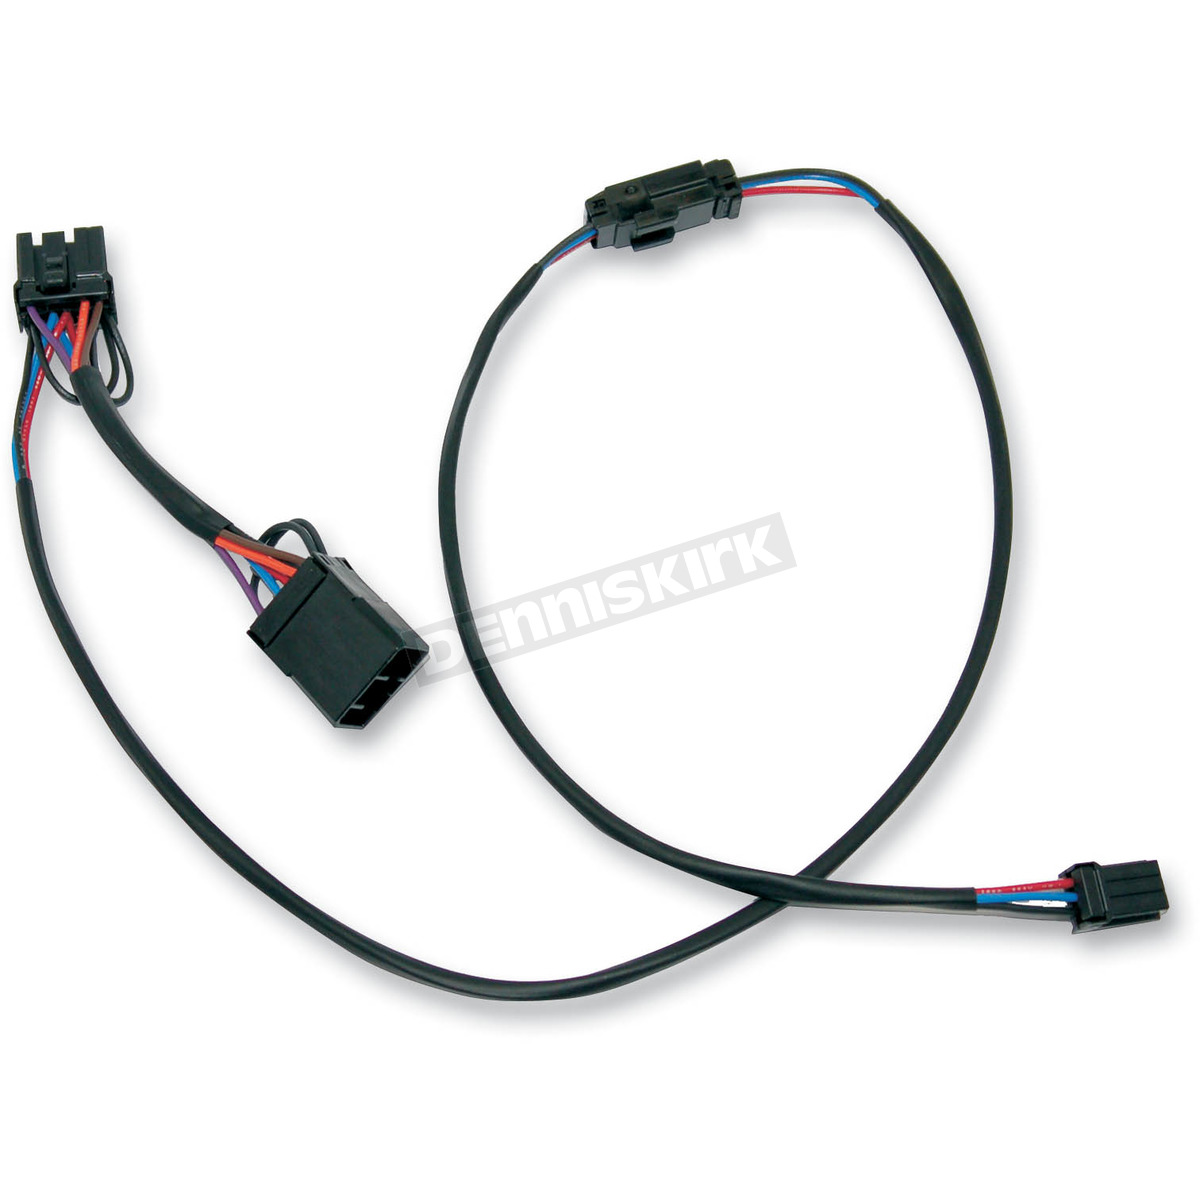 NAMZ Custom Cycle Products Tour-Pak Quick Disconnect Wiring Harness -  NTP-H01 Harley-Davidson Motorcycle | Dennis KirkDennis Kirk